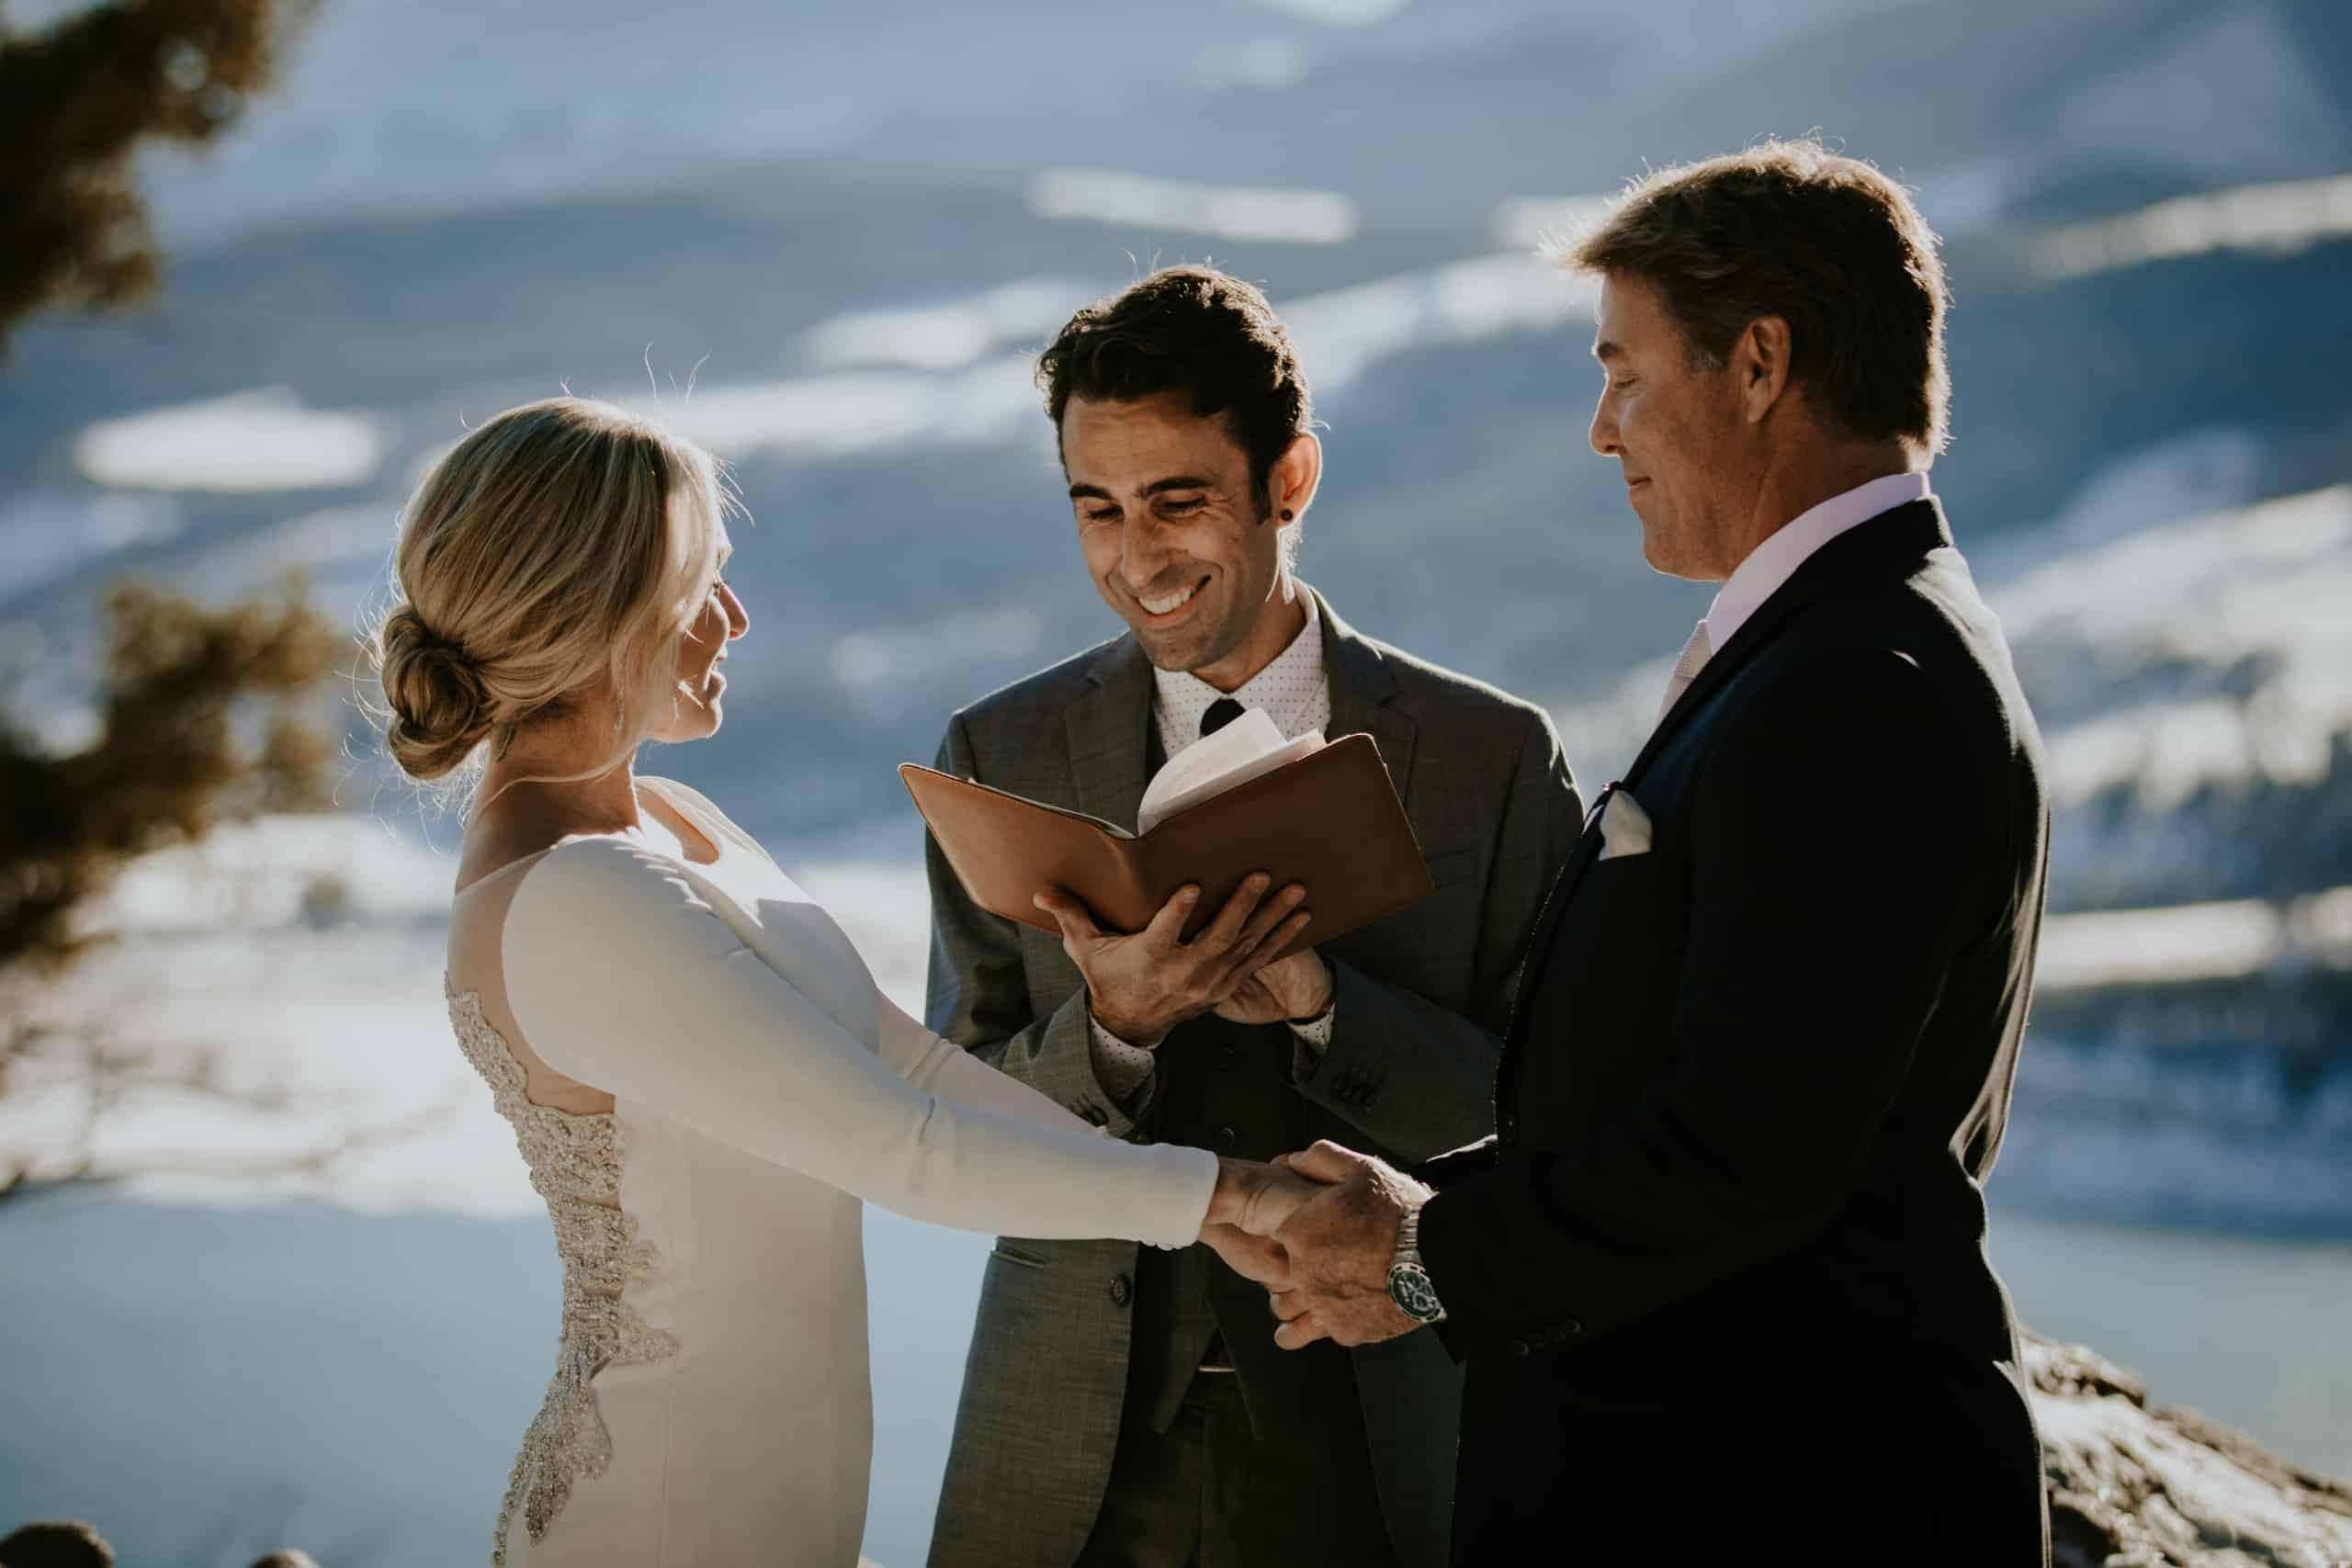 Colorado Wedding Officiants